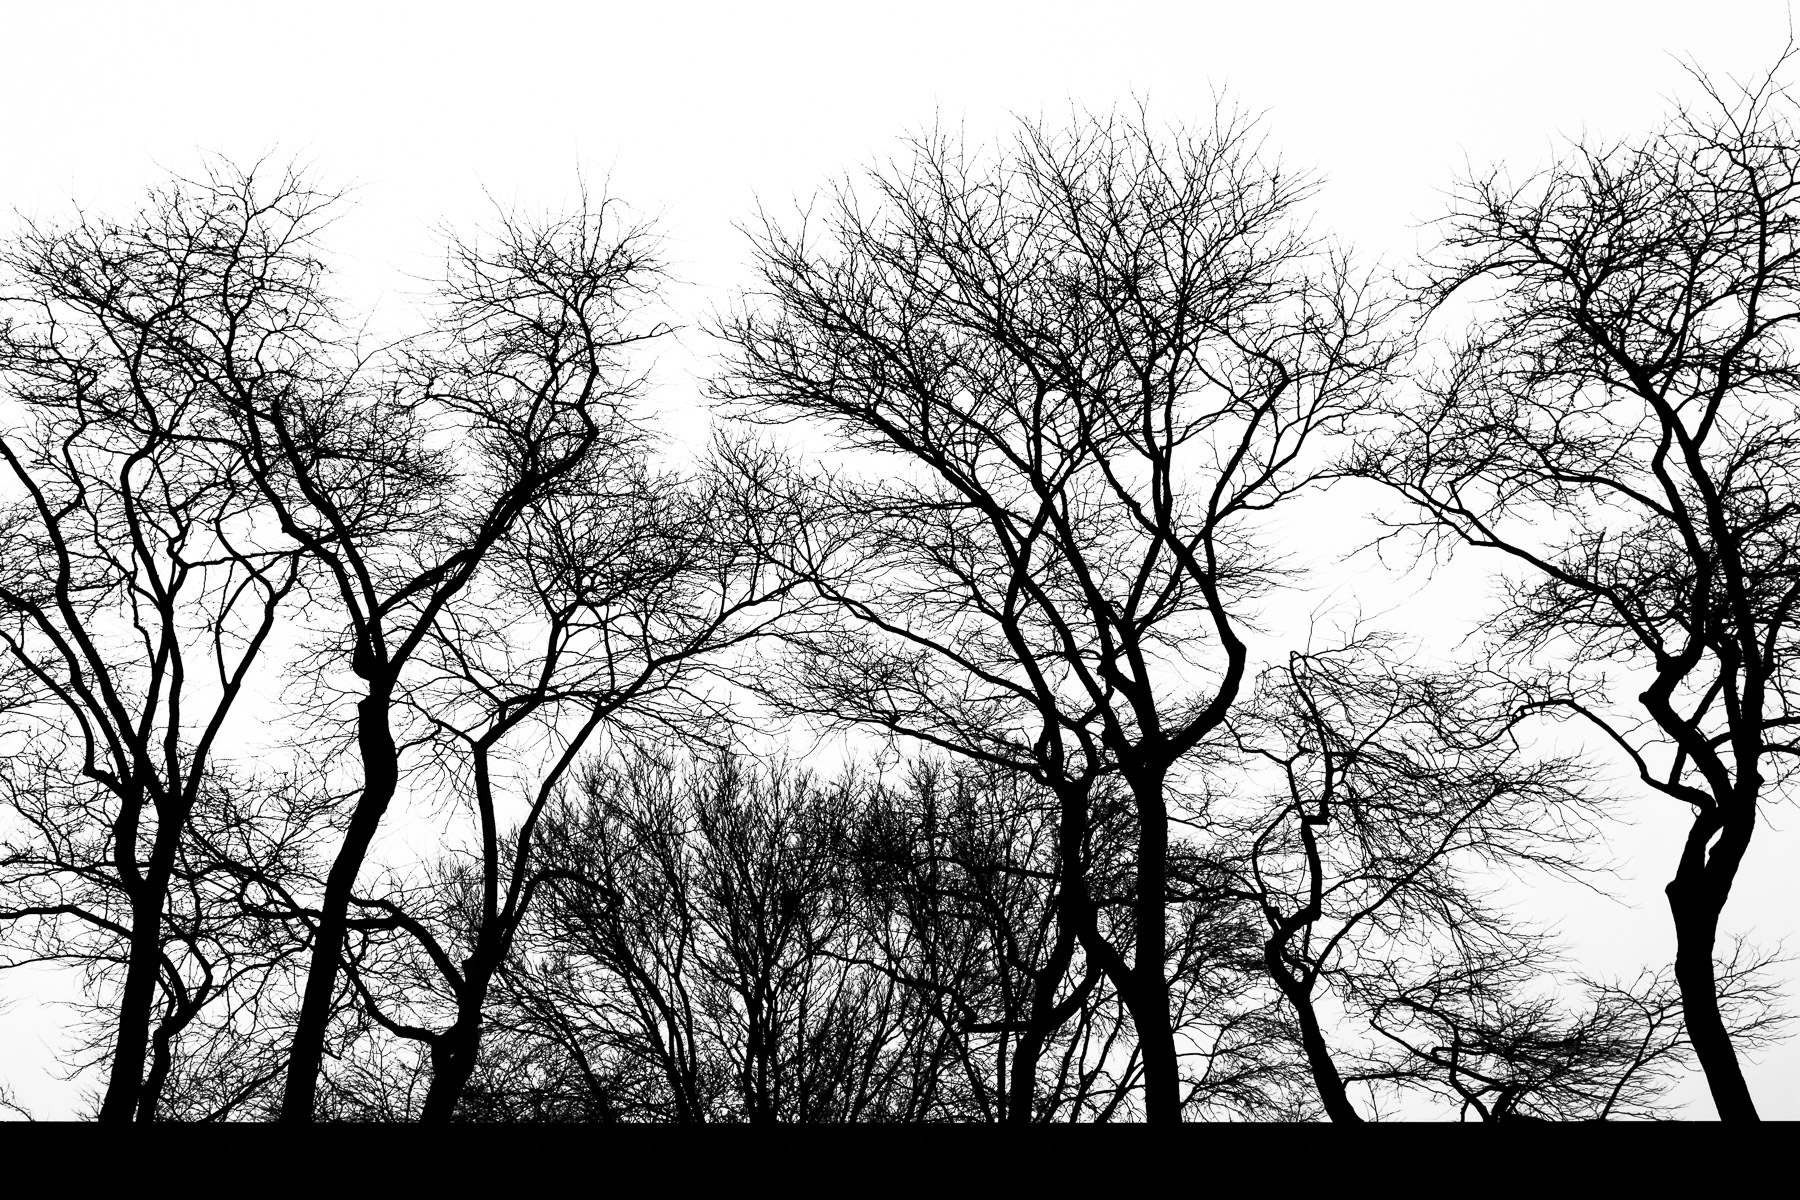 The Trees Silhouettes  Chicago  75CentralPhotography